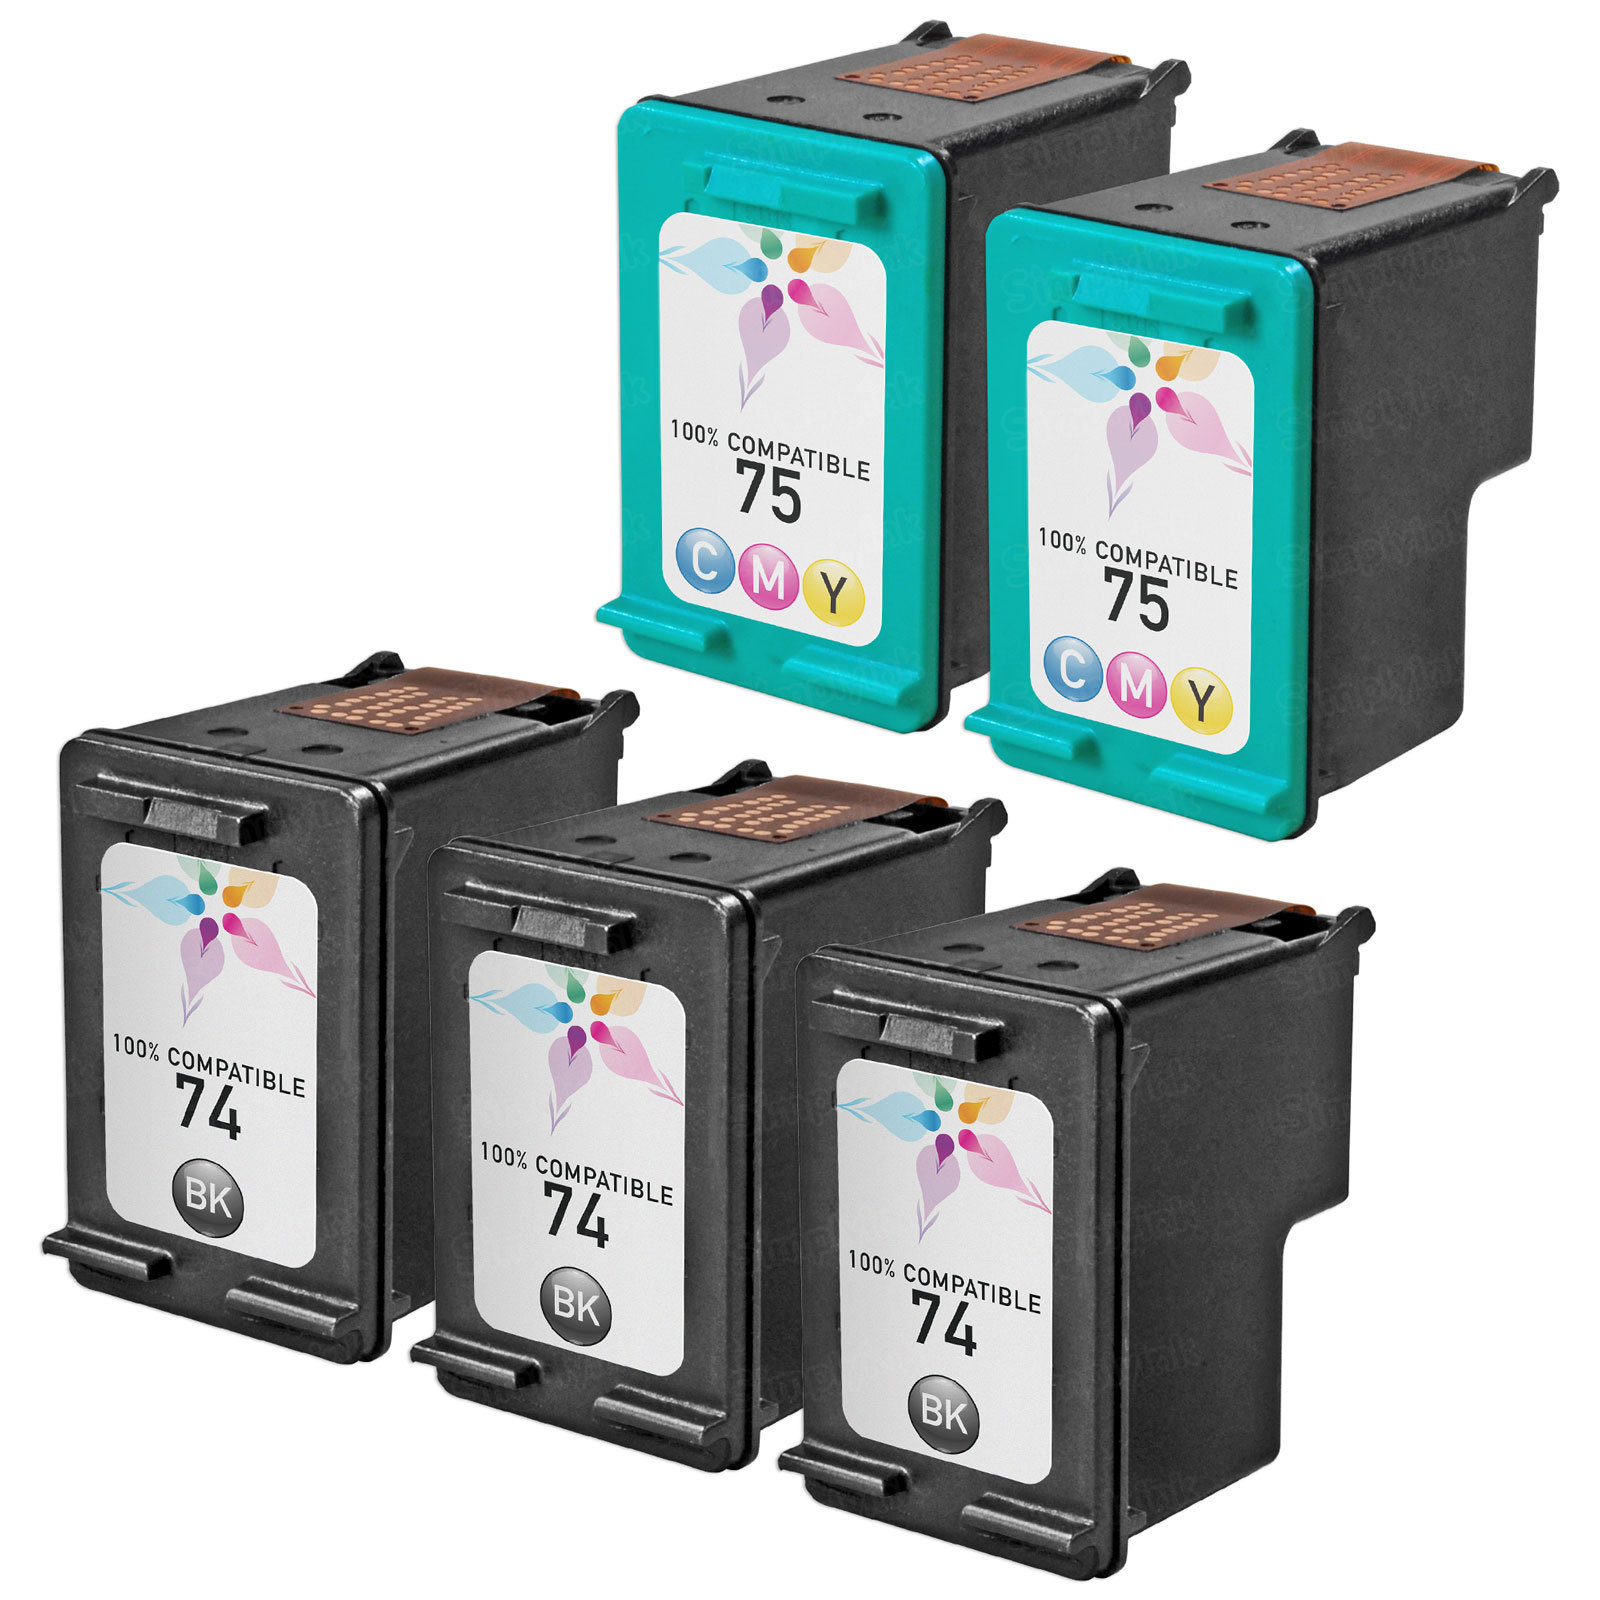 Remanufactured Bulk Set of 5 Ink Cartridges to Replace HP 74 & HP 75 (3 BK, 2 CLR)